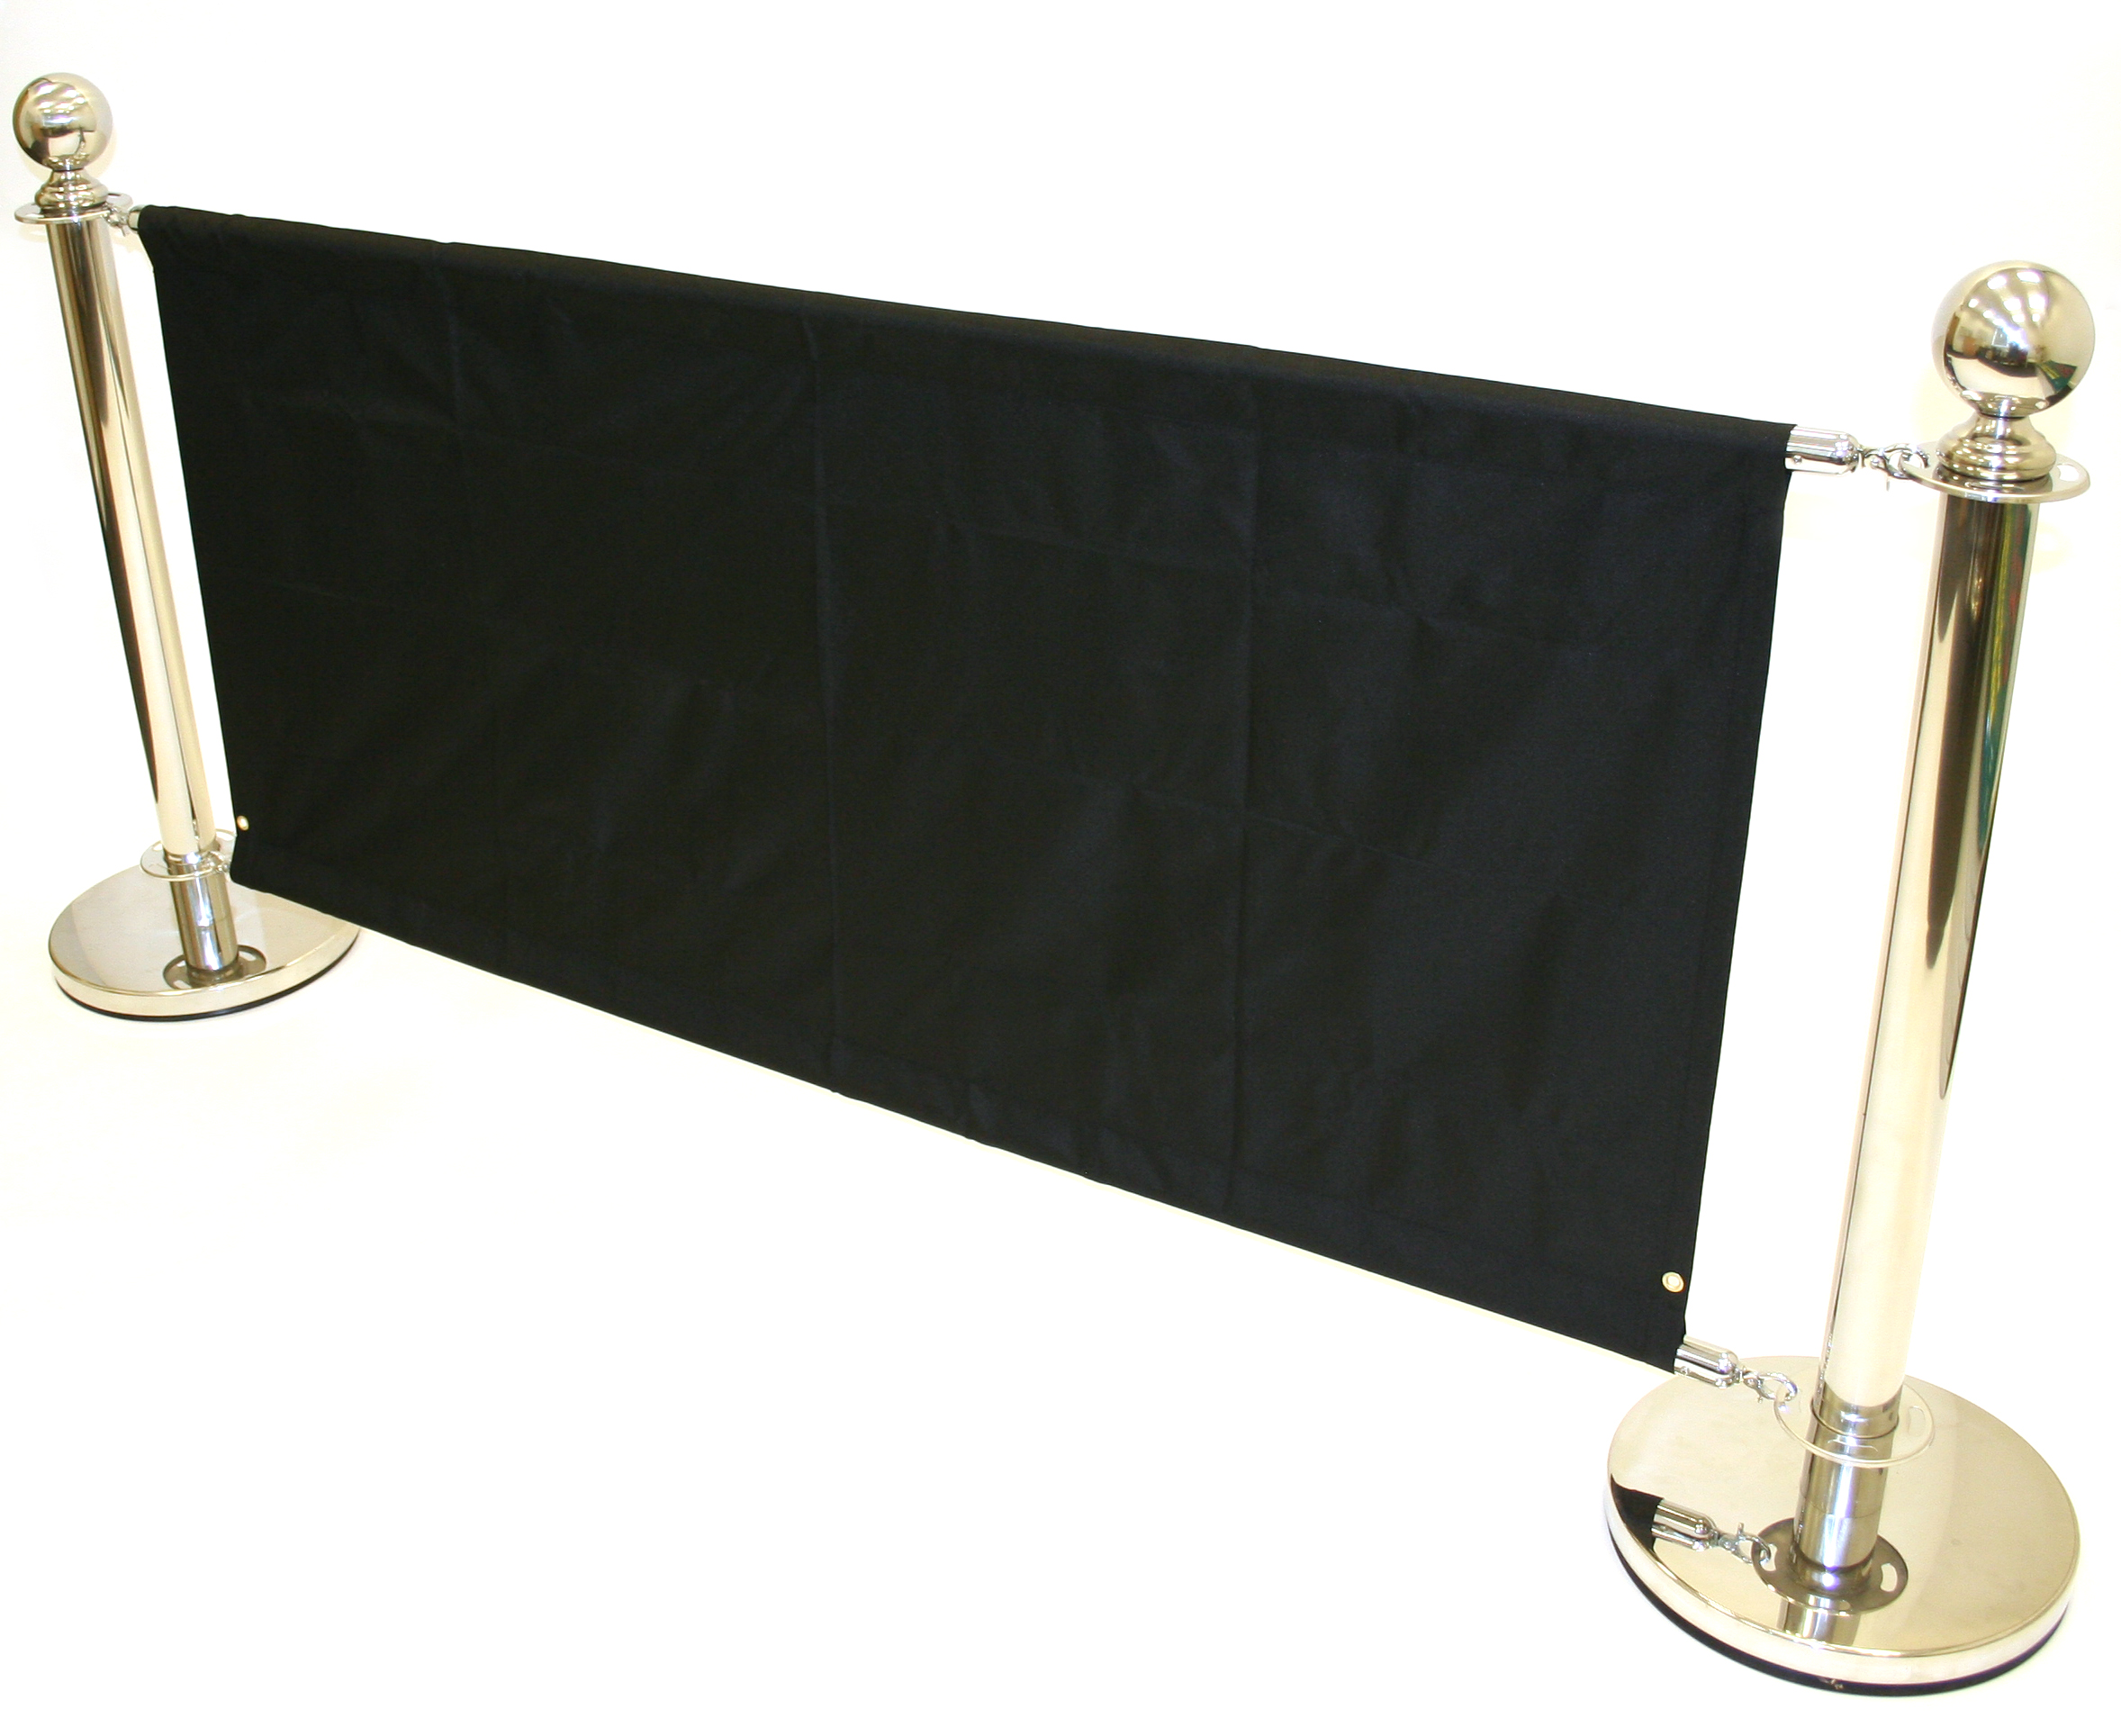 Cafe Barrier Sets - 2 x Upright Posts, 2 x Bases, 2 x Cross Poles - BE Furniture Sales